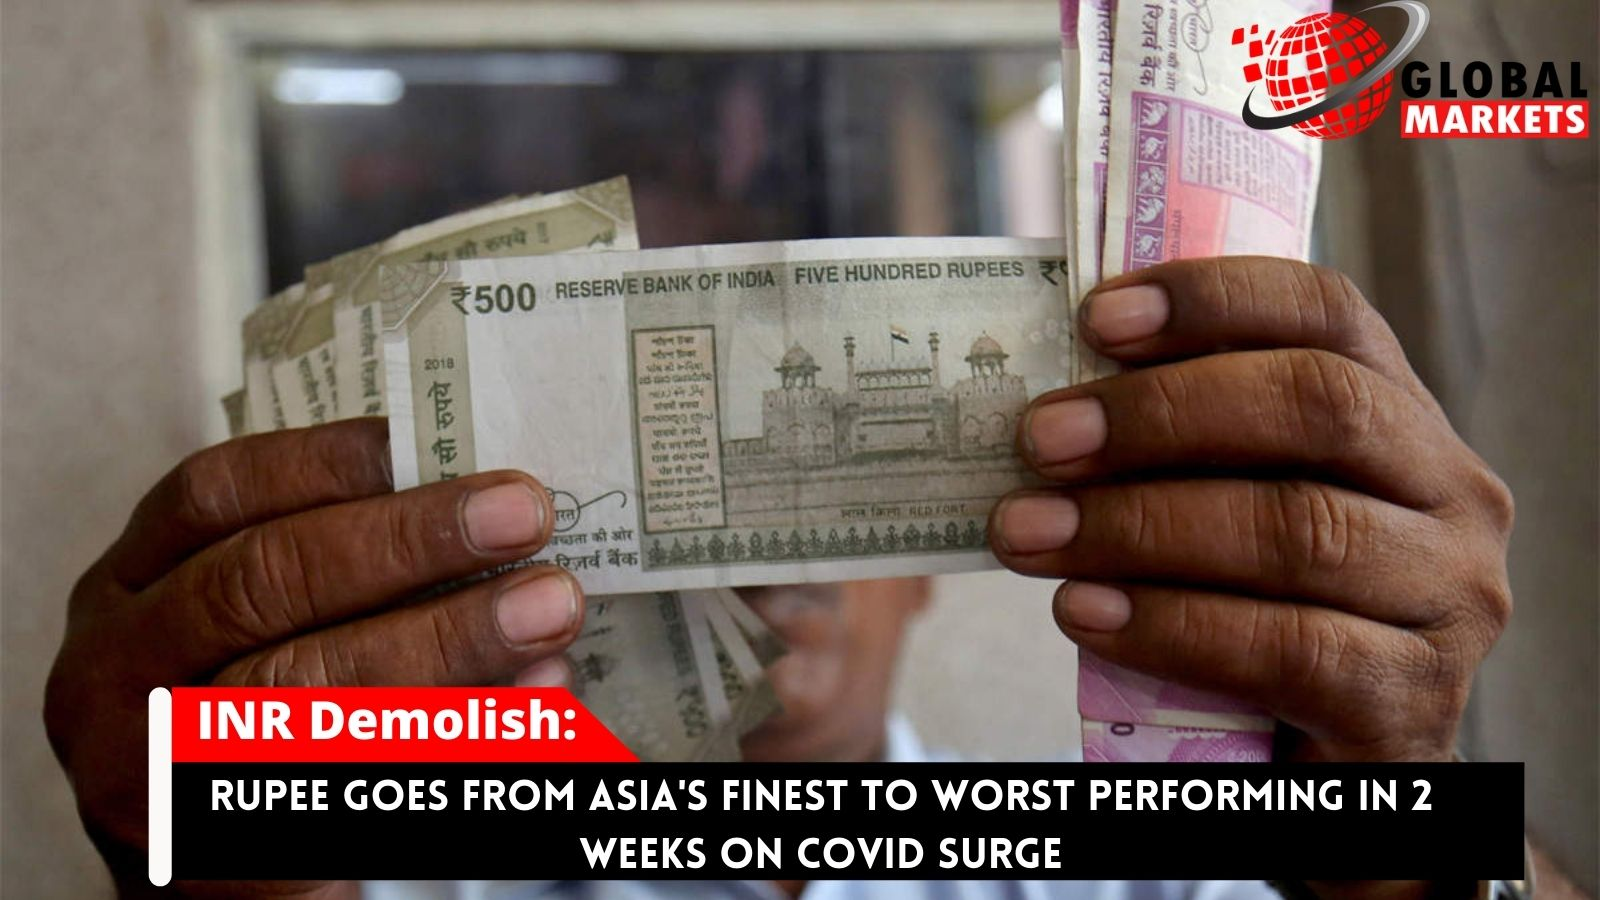 Rupee Goes From Asia's Finest To Worst Performing In 2 Weeks On Covid Surge